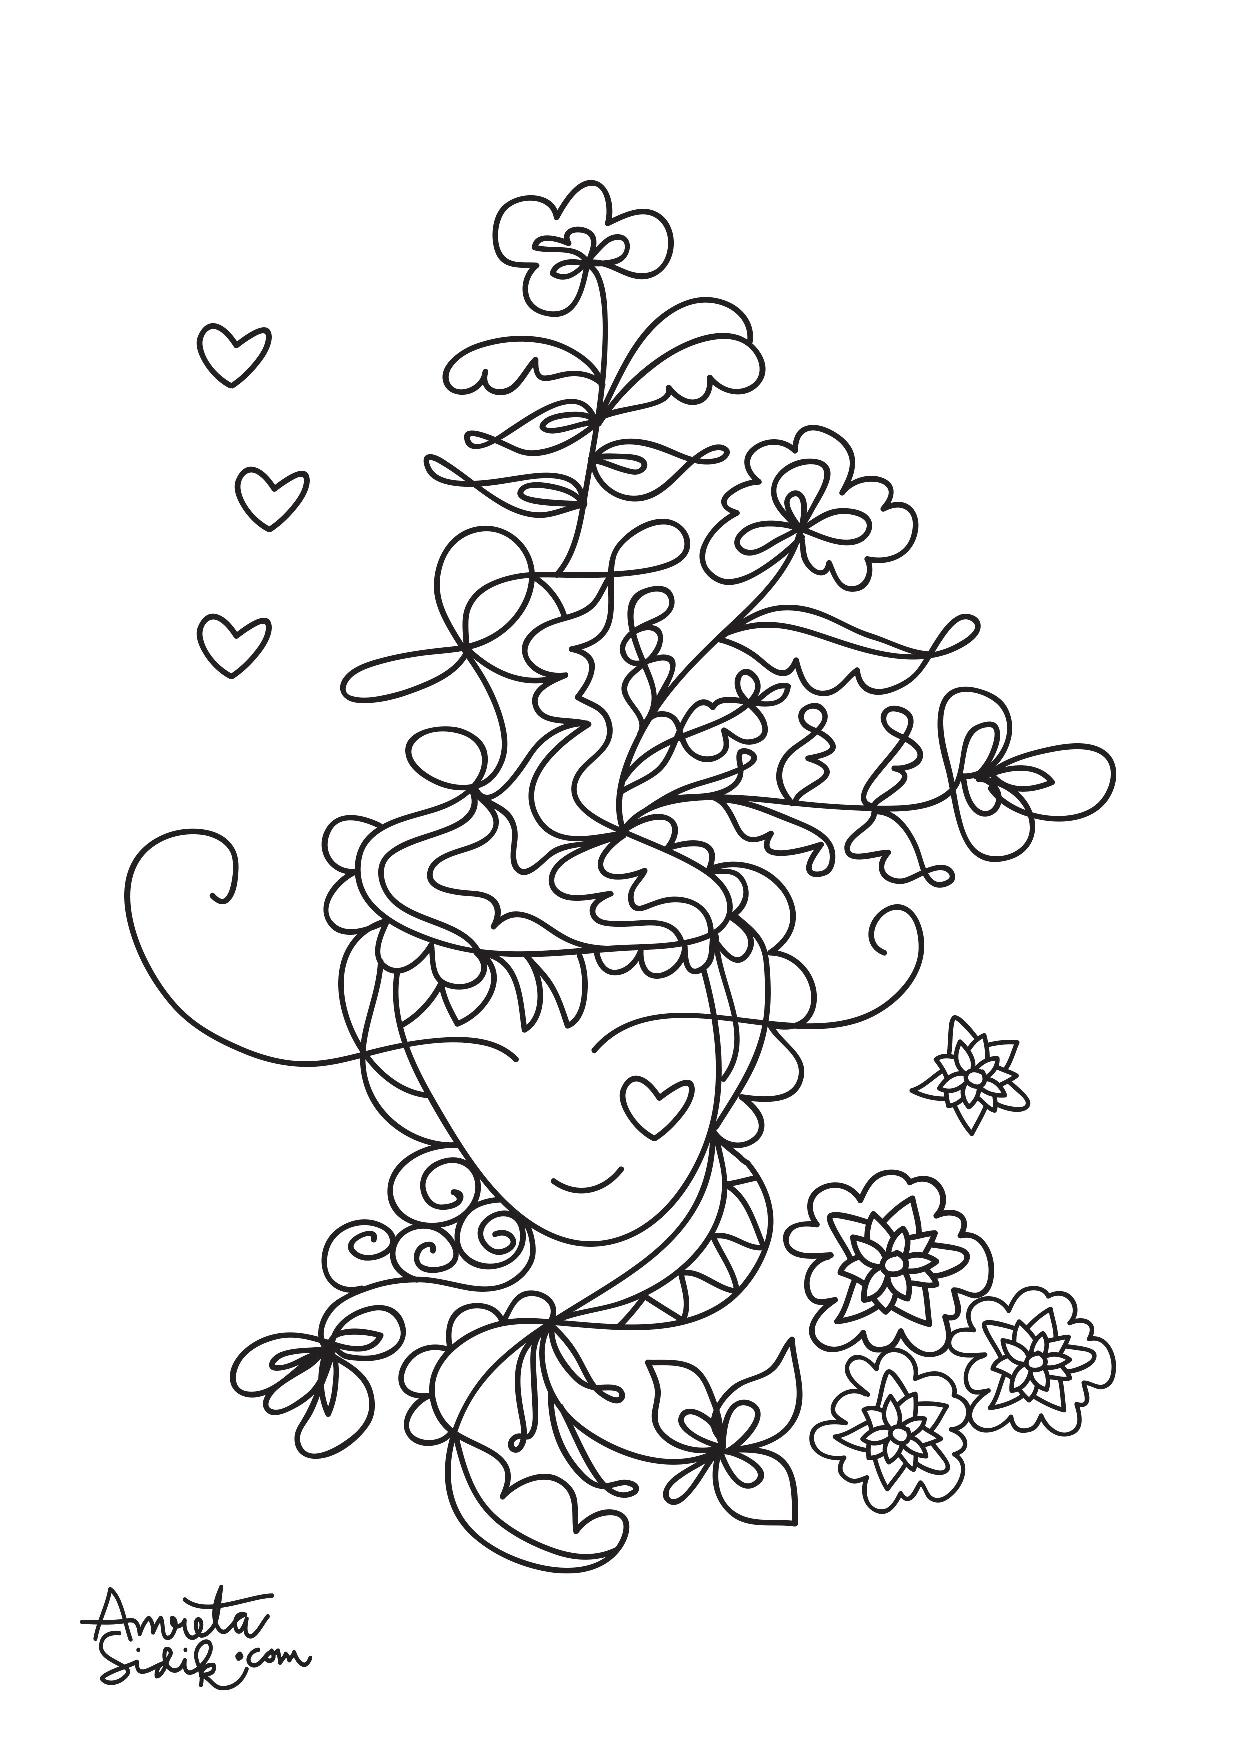 Flowers girl 1 Anti stress Adult Coloring Pages Page 2